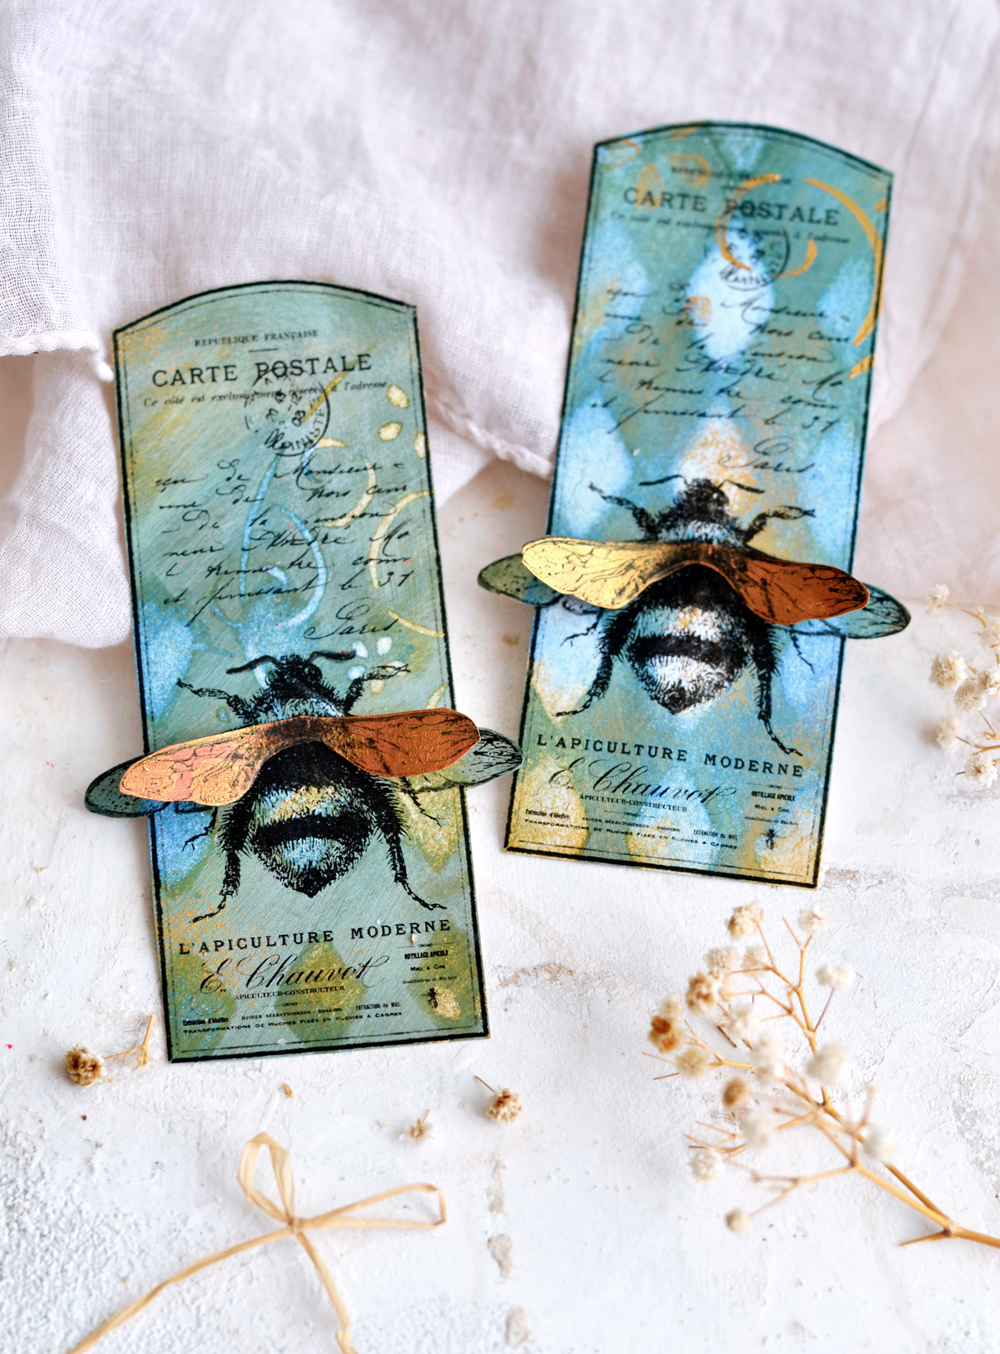 DIY 3D Vintage Bee Tags - learn how to make these amazing bee tags using my revolutionary technique of printing on acrylic paint backgrounds! #diy #crafts #vintage #craftprojects #paperprojects #bee #bees #goldpaint #mixedmedia #acrylic paint